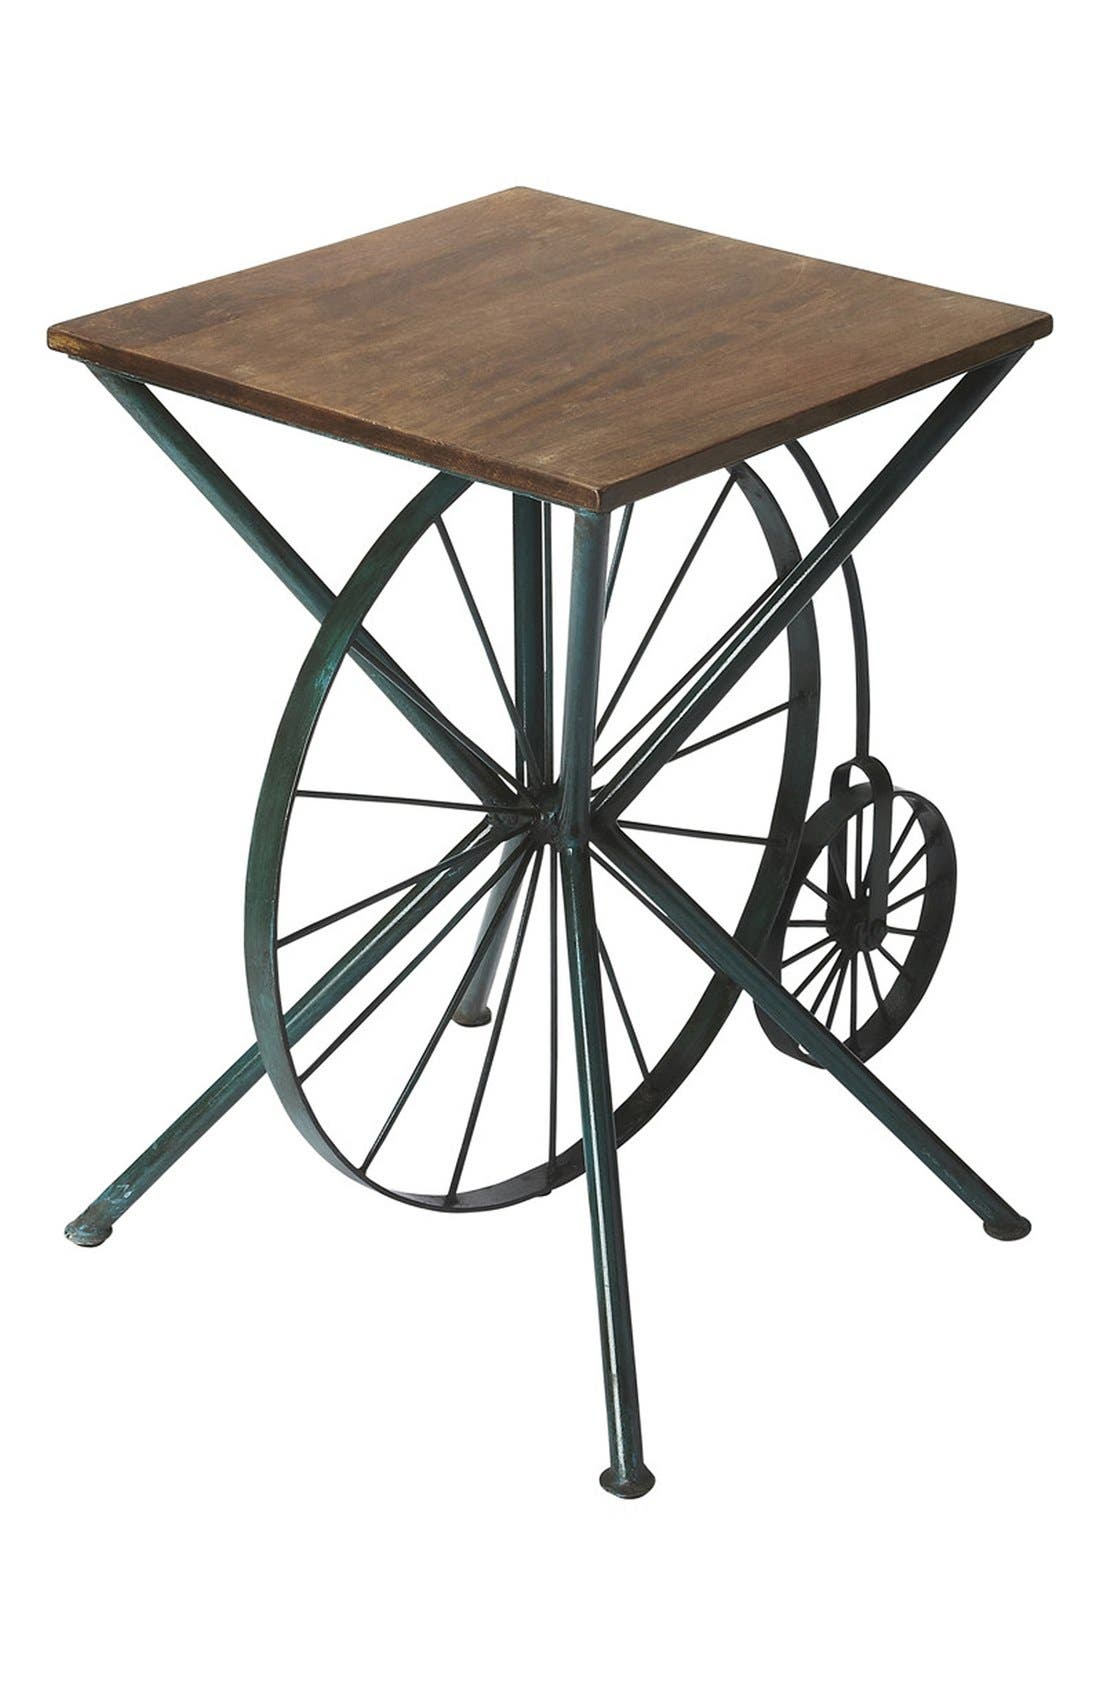 Main Image - Butler Bicycle Accent Table